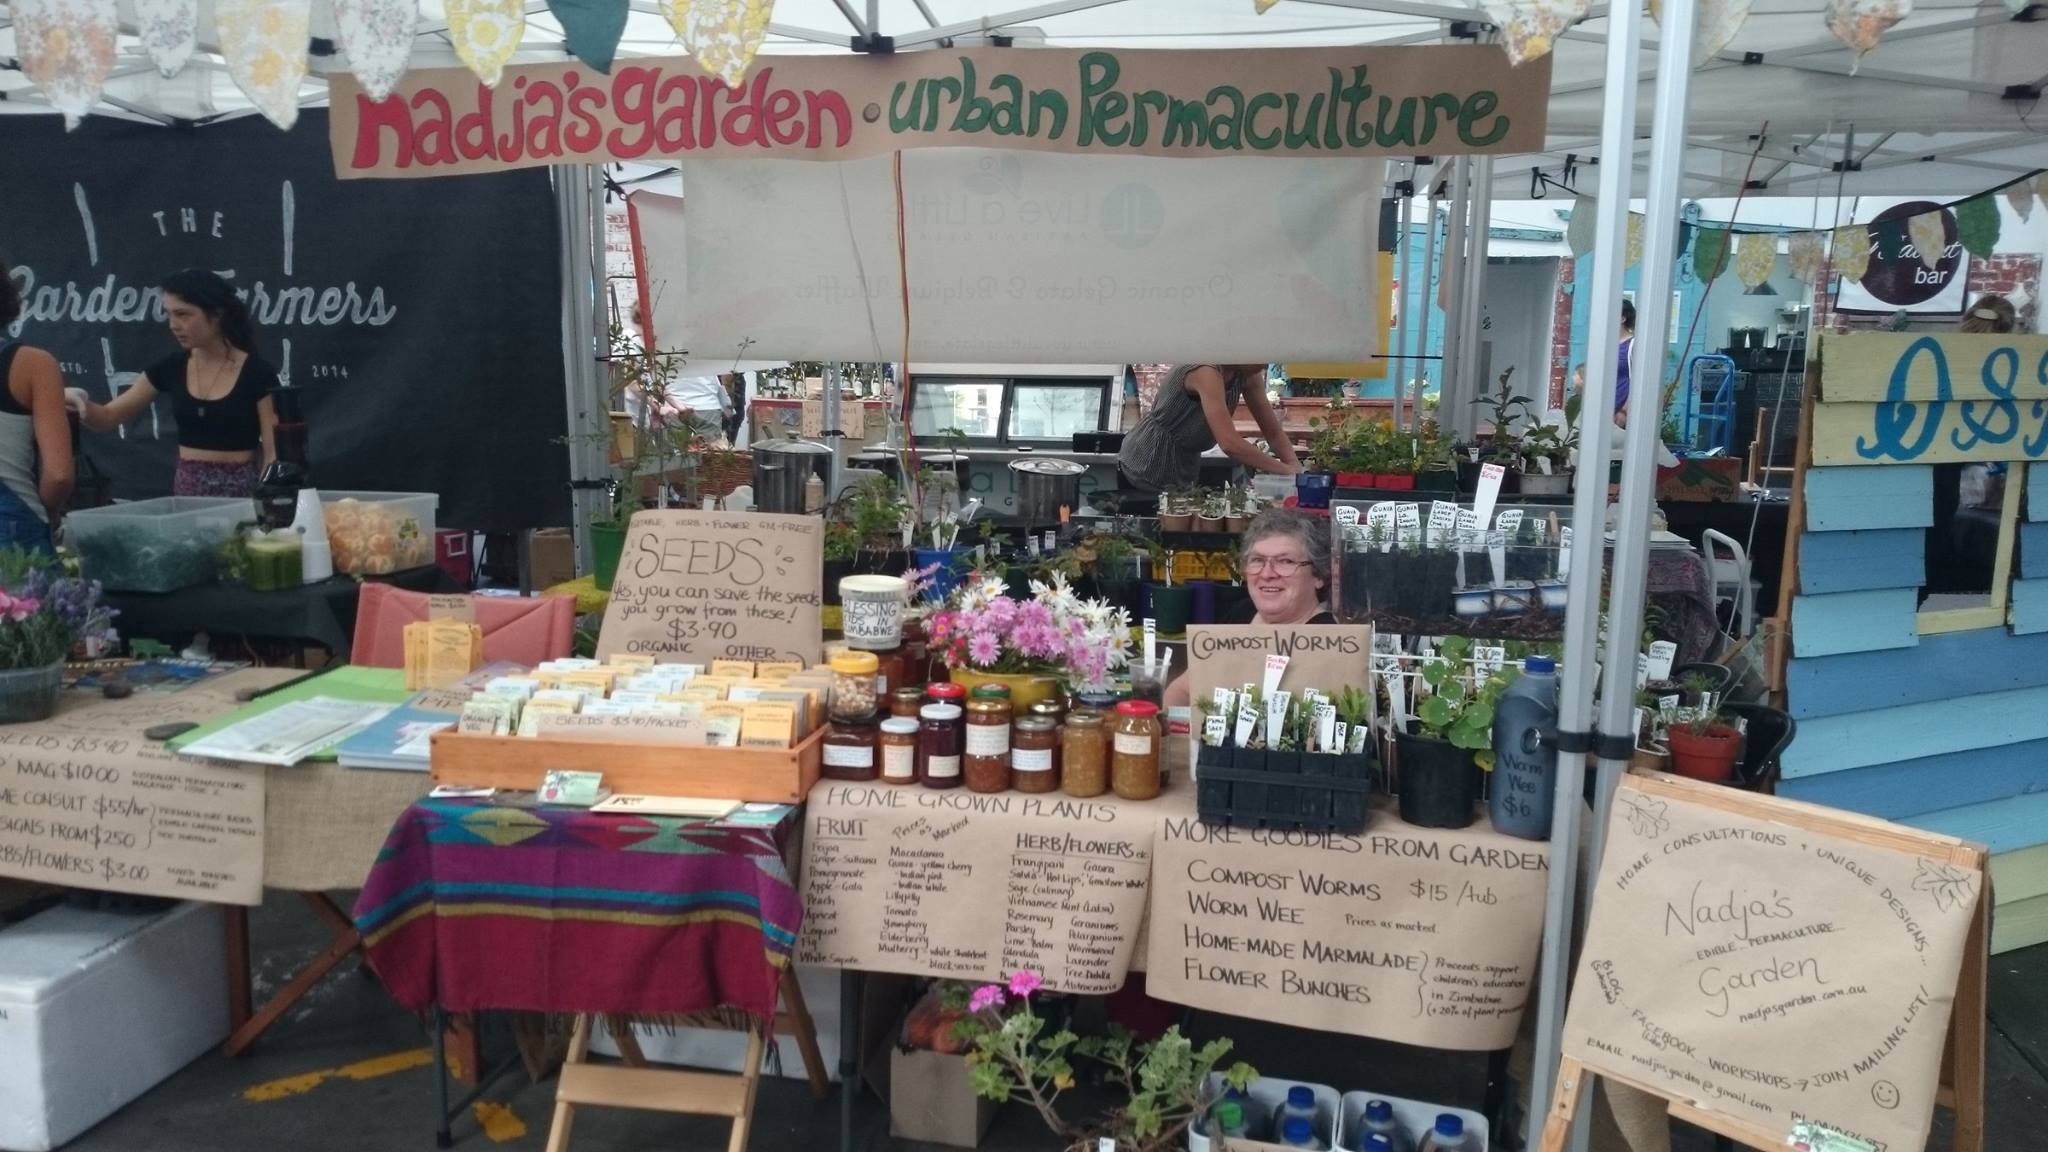 Nadja's Garden stall at the Seed Freedom Festival in Adelaide 2014